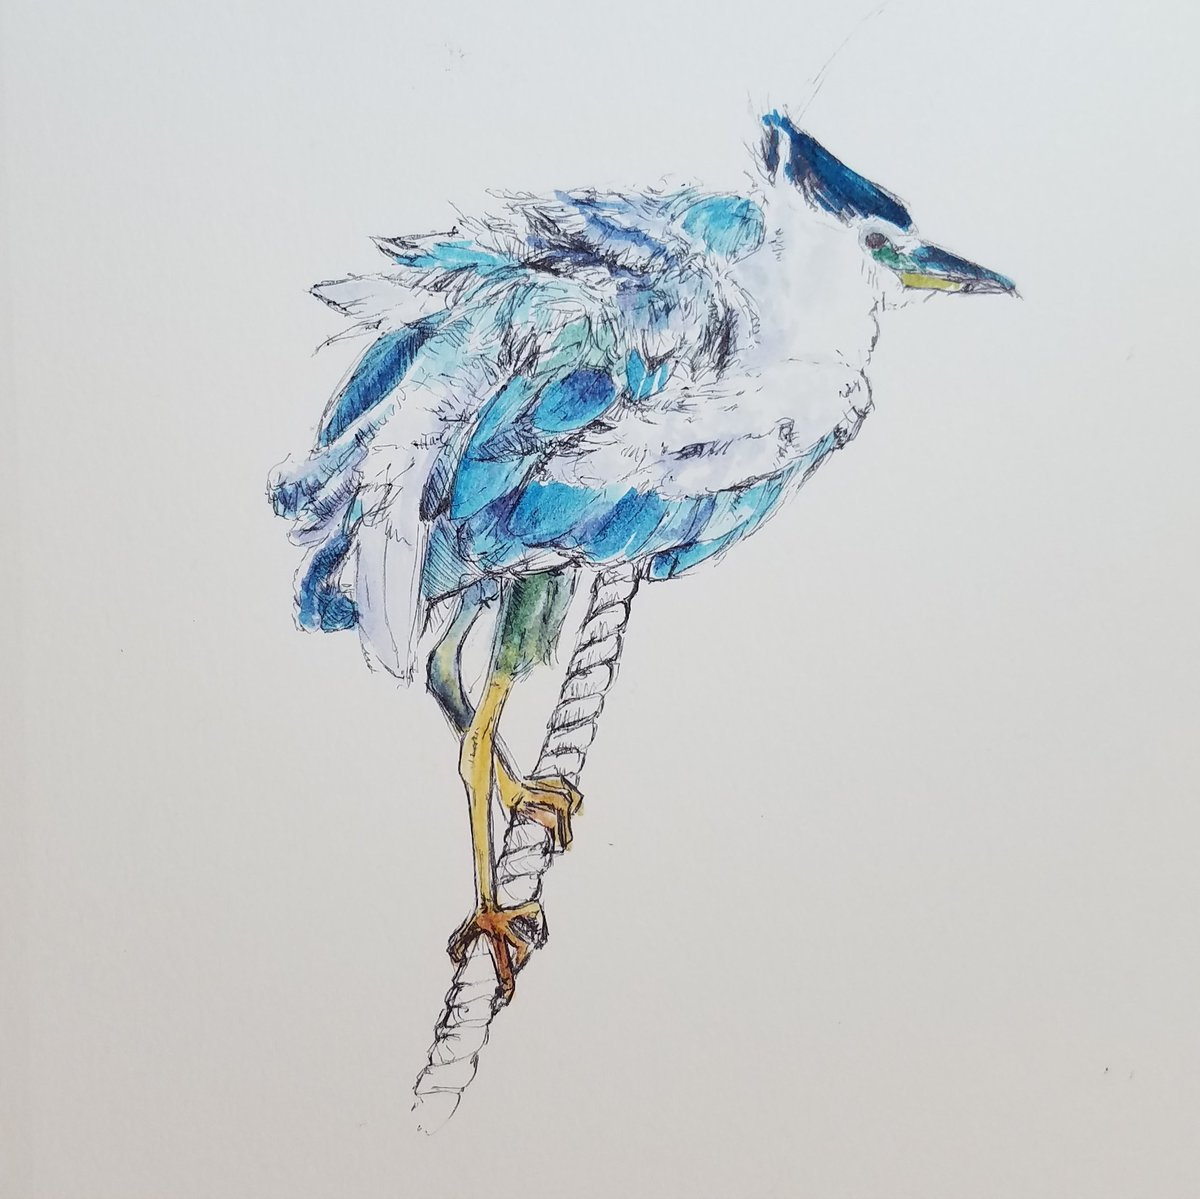 ruffled blue heron sitting on a rope in ballpoint pen and tombow markers